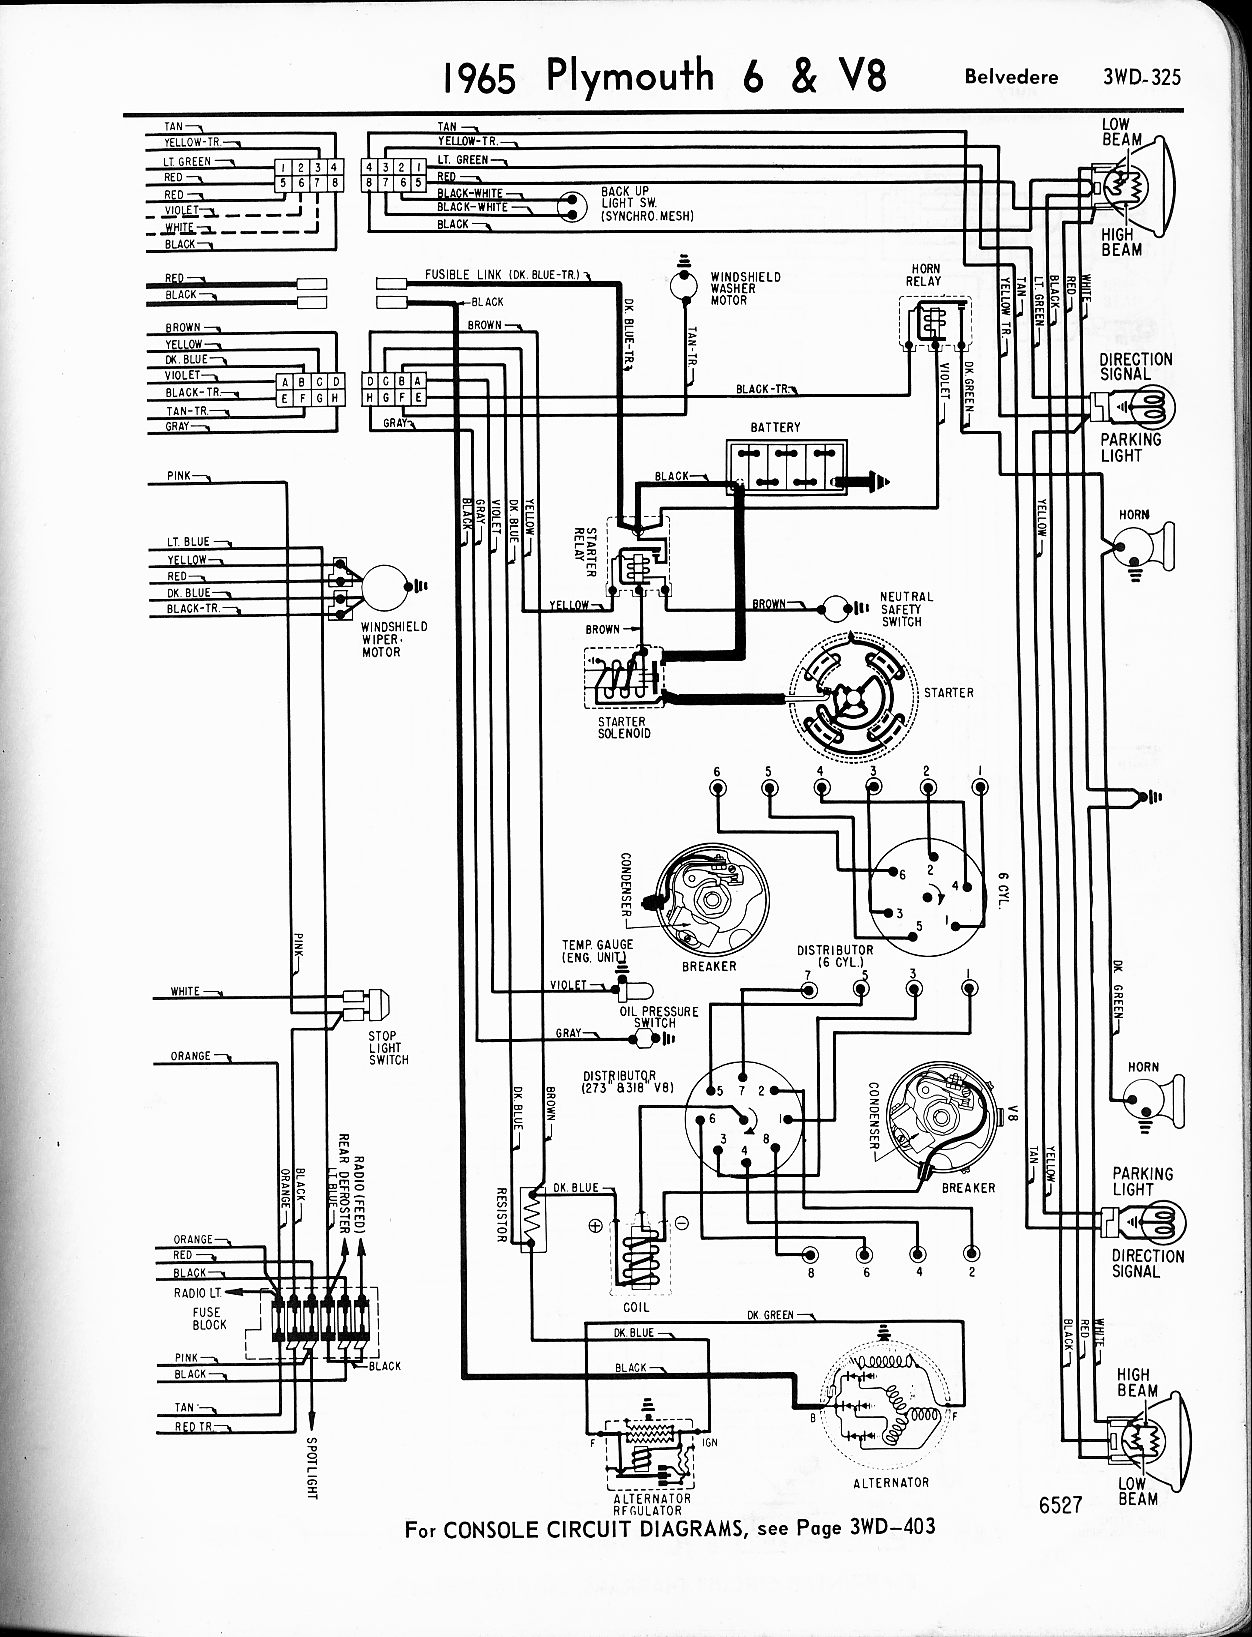 Wiring diagram for plymouth valiant dodge